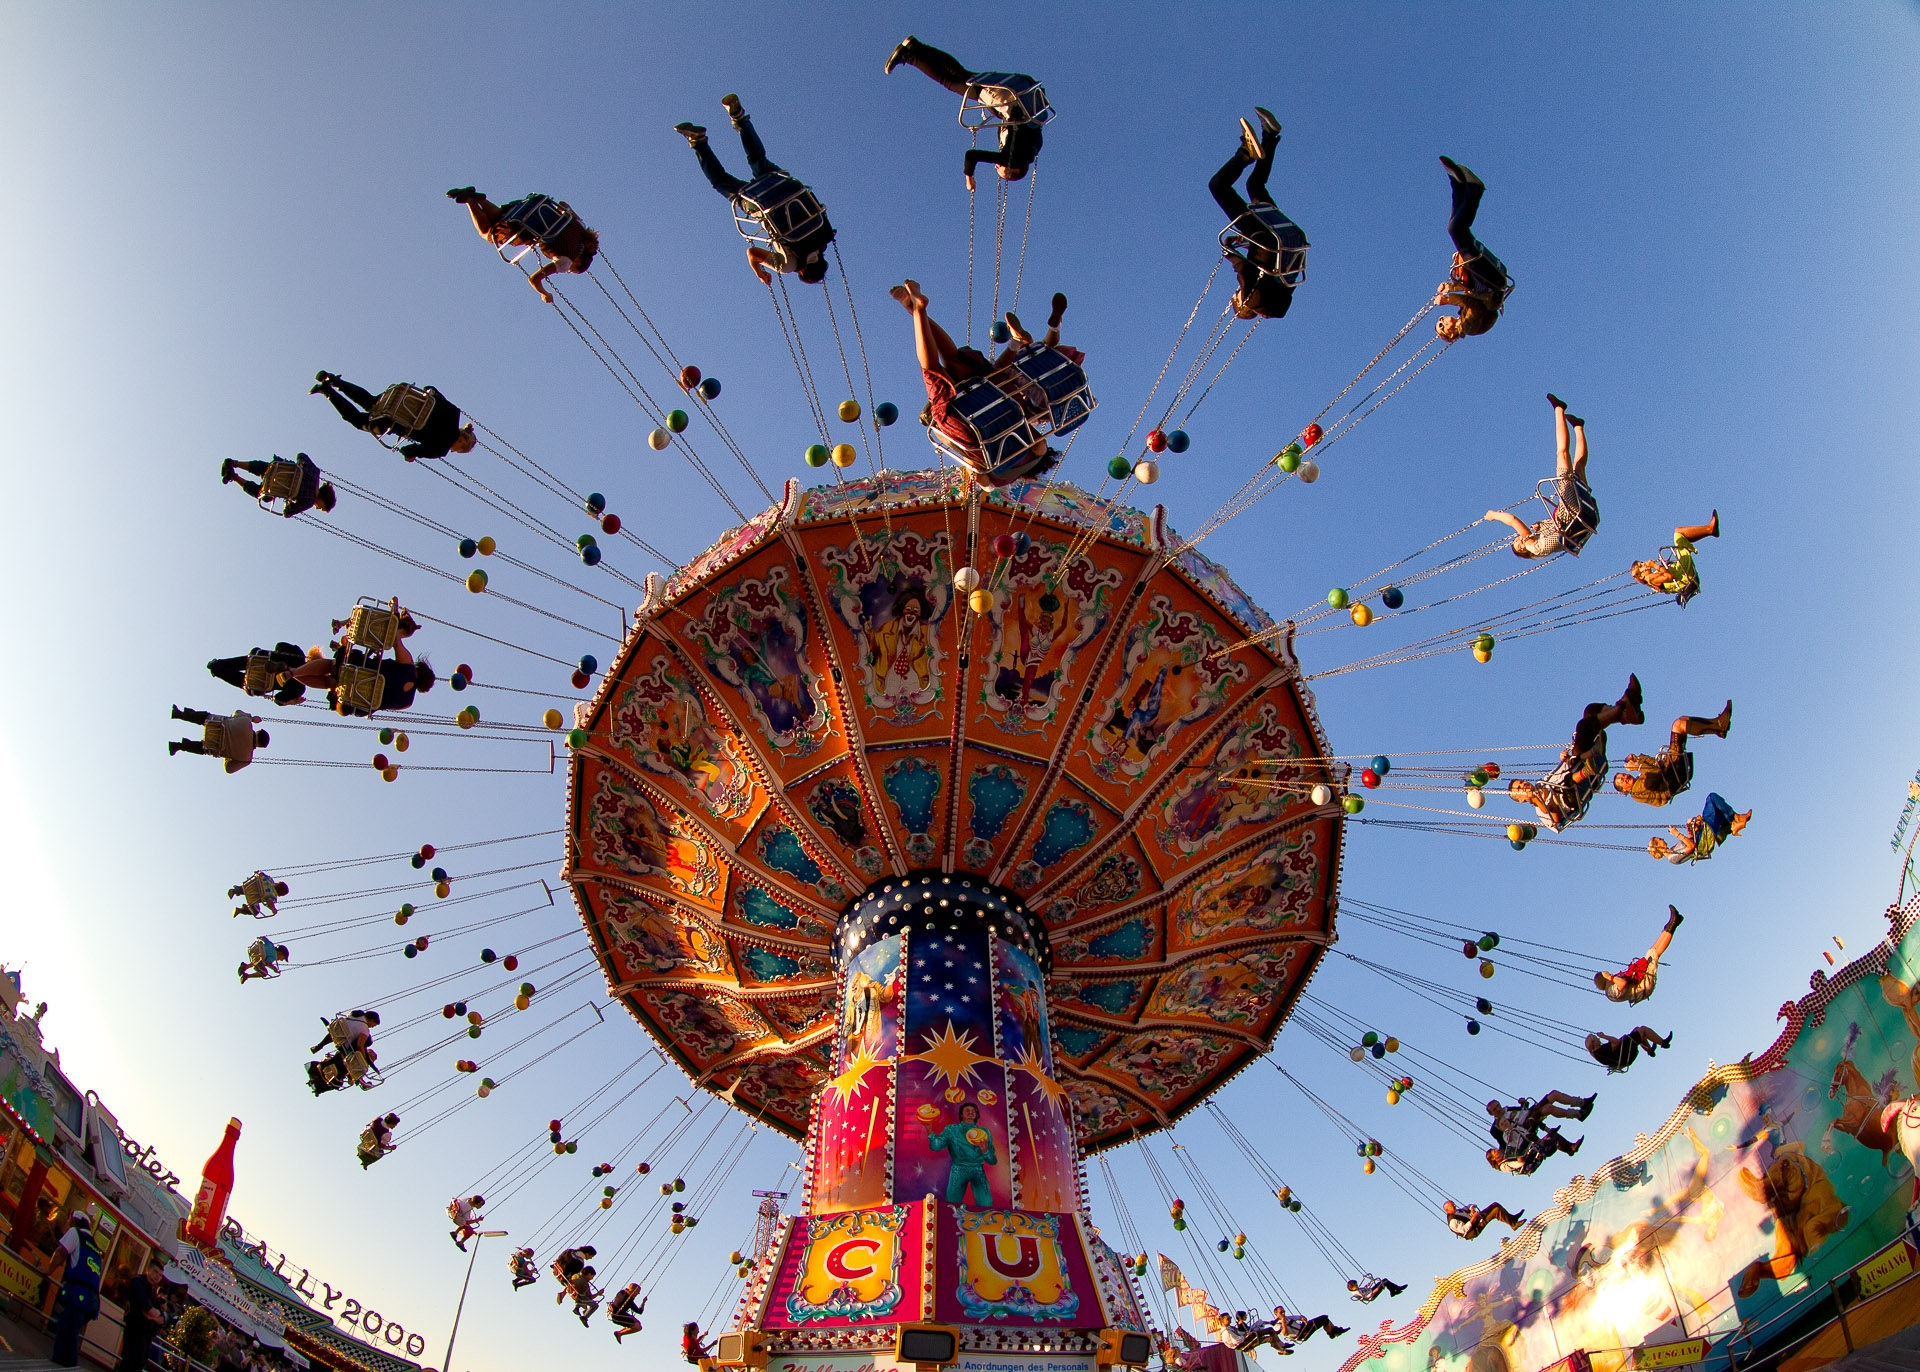 Image: Looking up at people on a carnival ride.